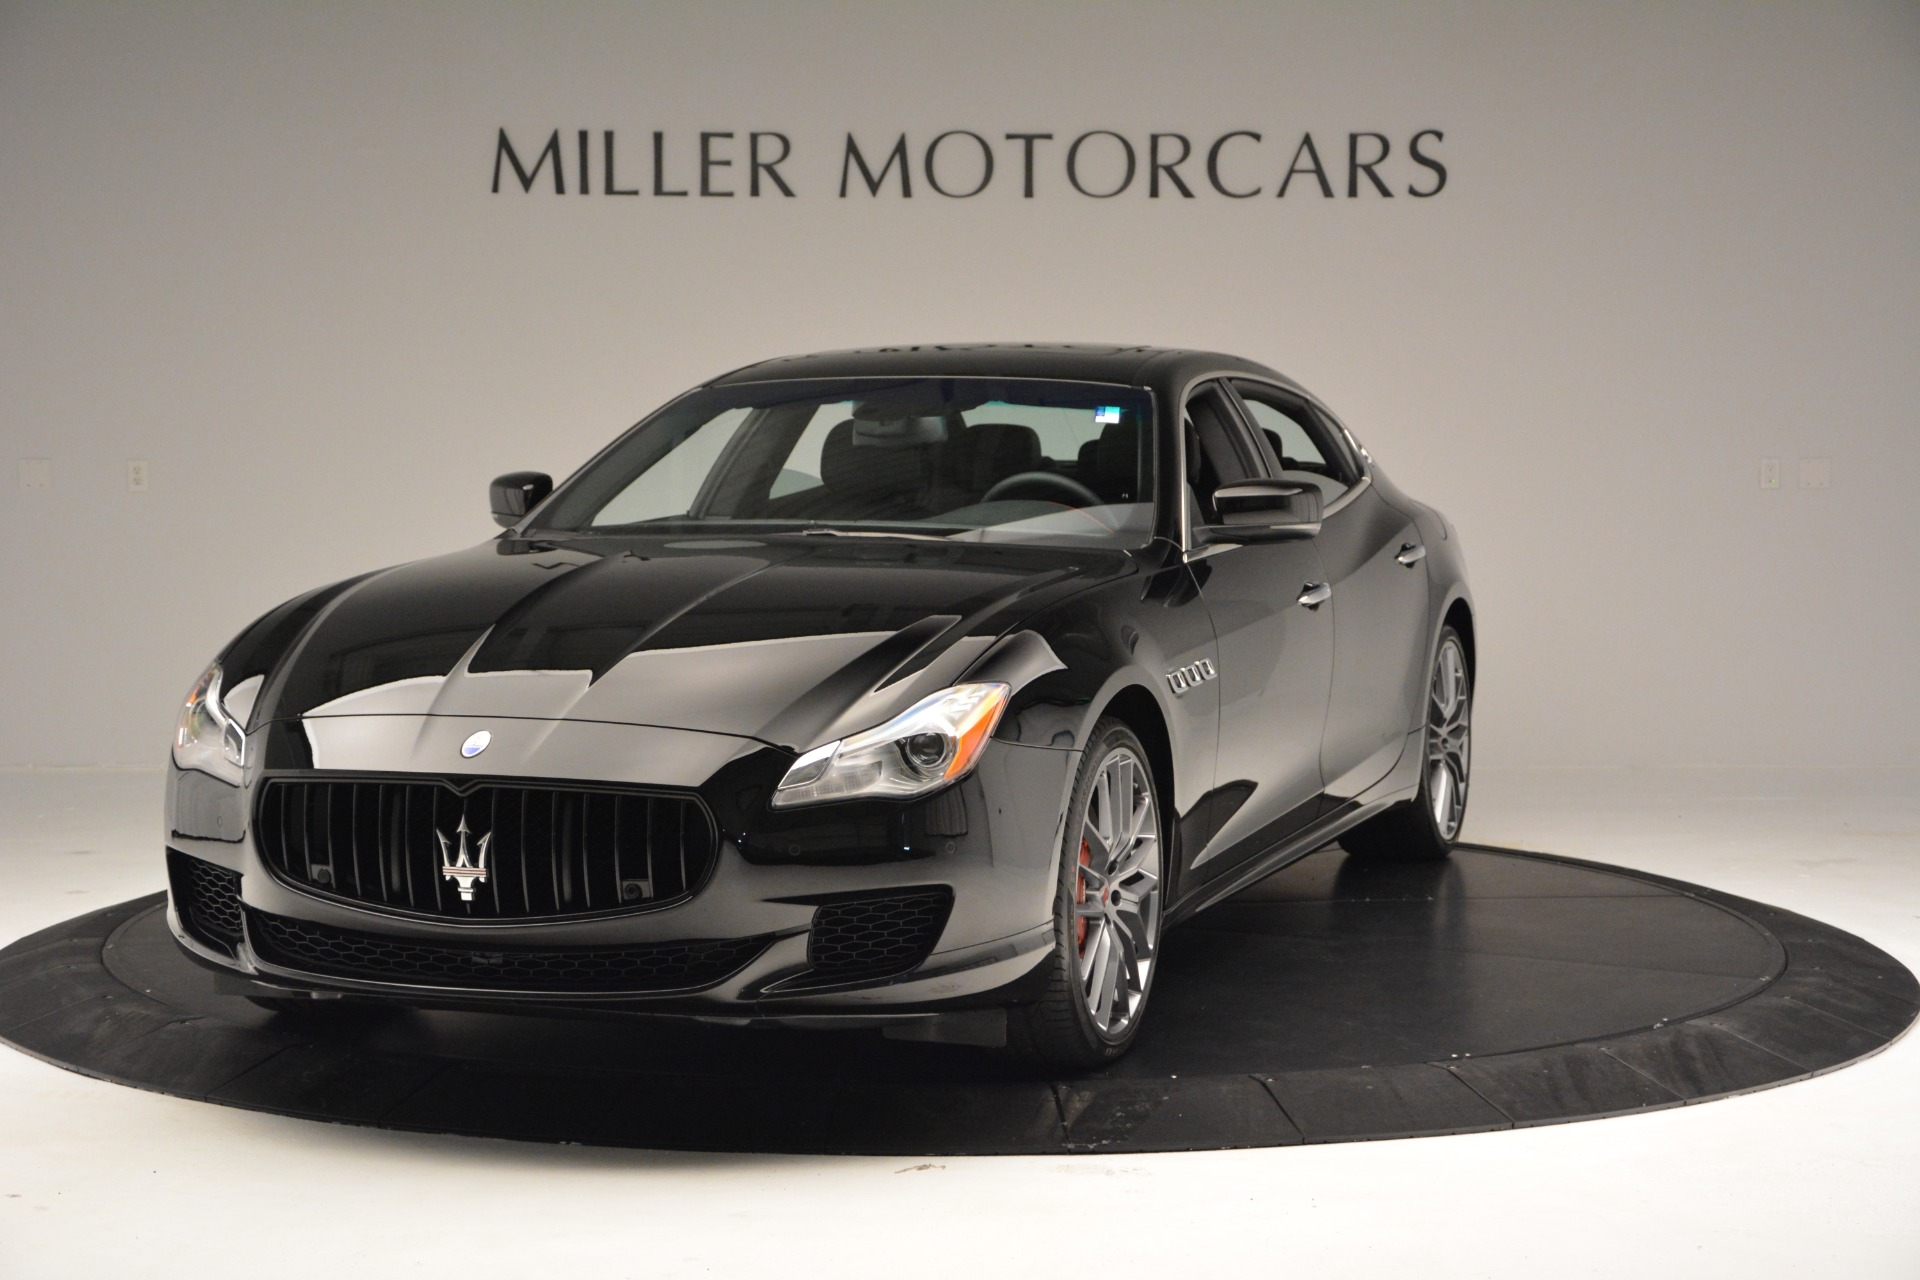 Used 2015 Maserati Quattroporte GTS for sale Sold at Pagani of Greenwich in Greenwich CT 06830 1